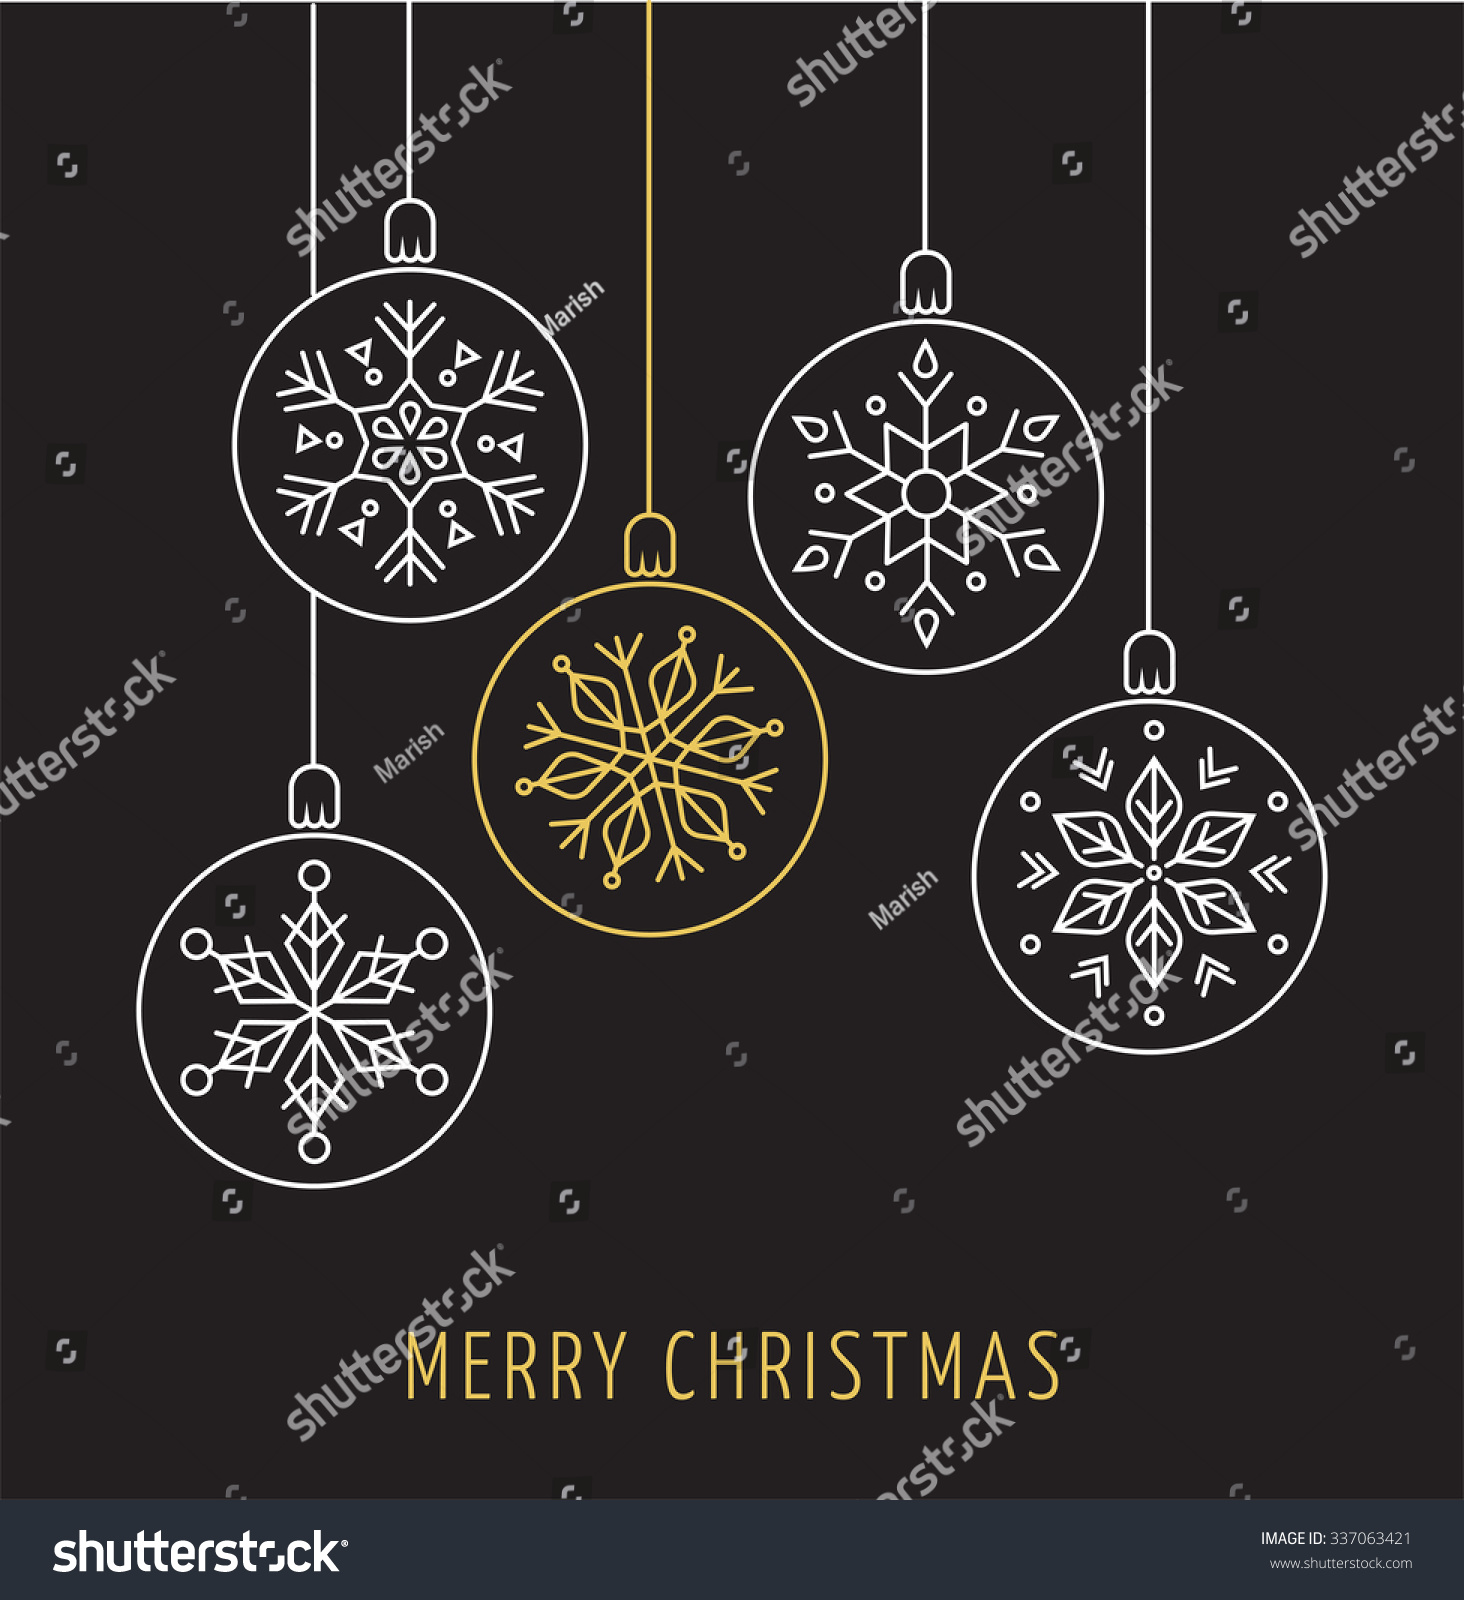 snowlakes geometric christmas ornaments background stock vector